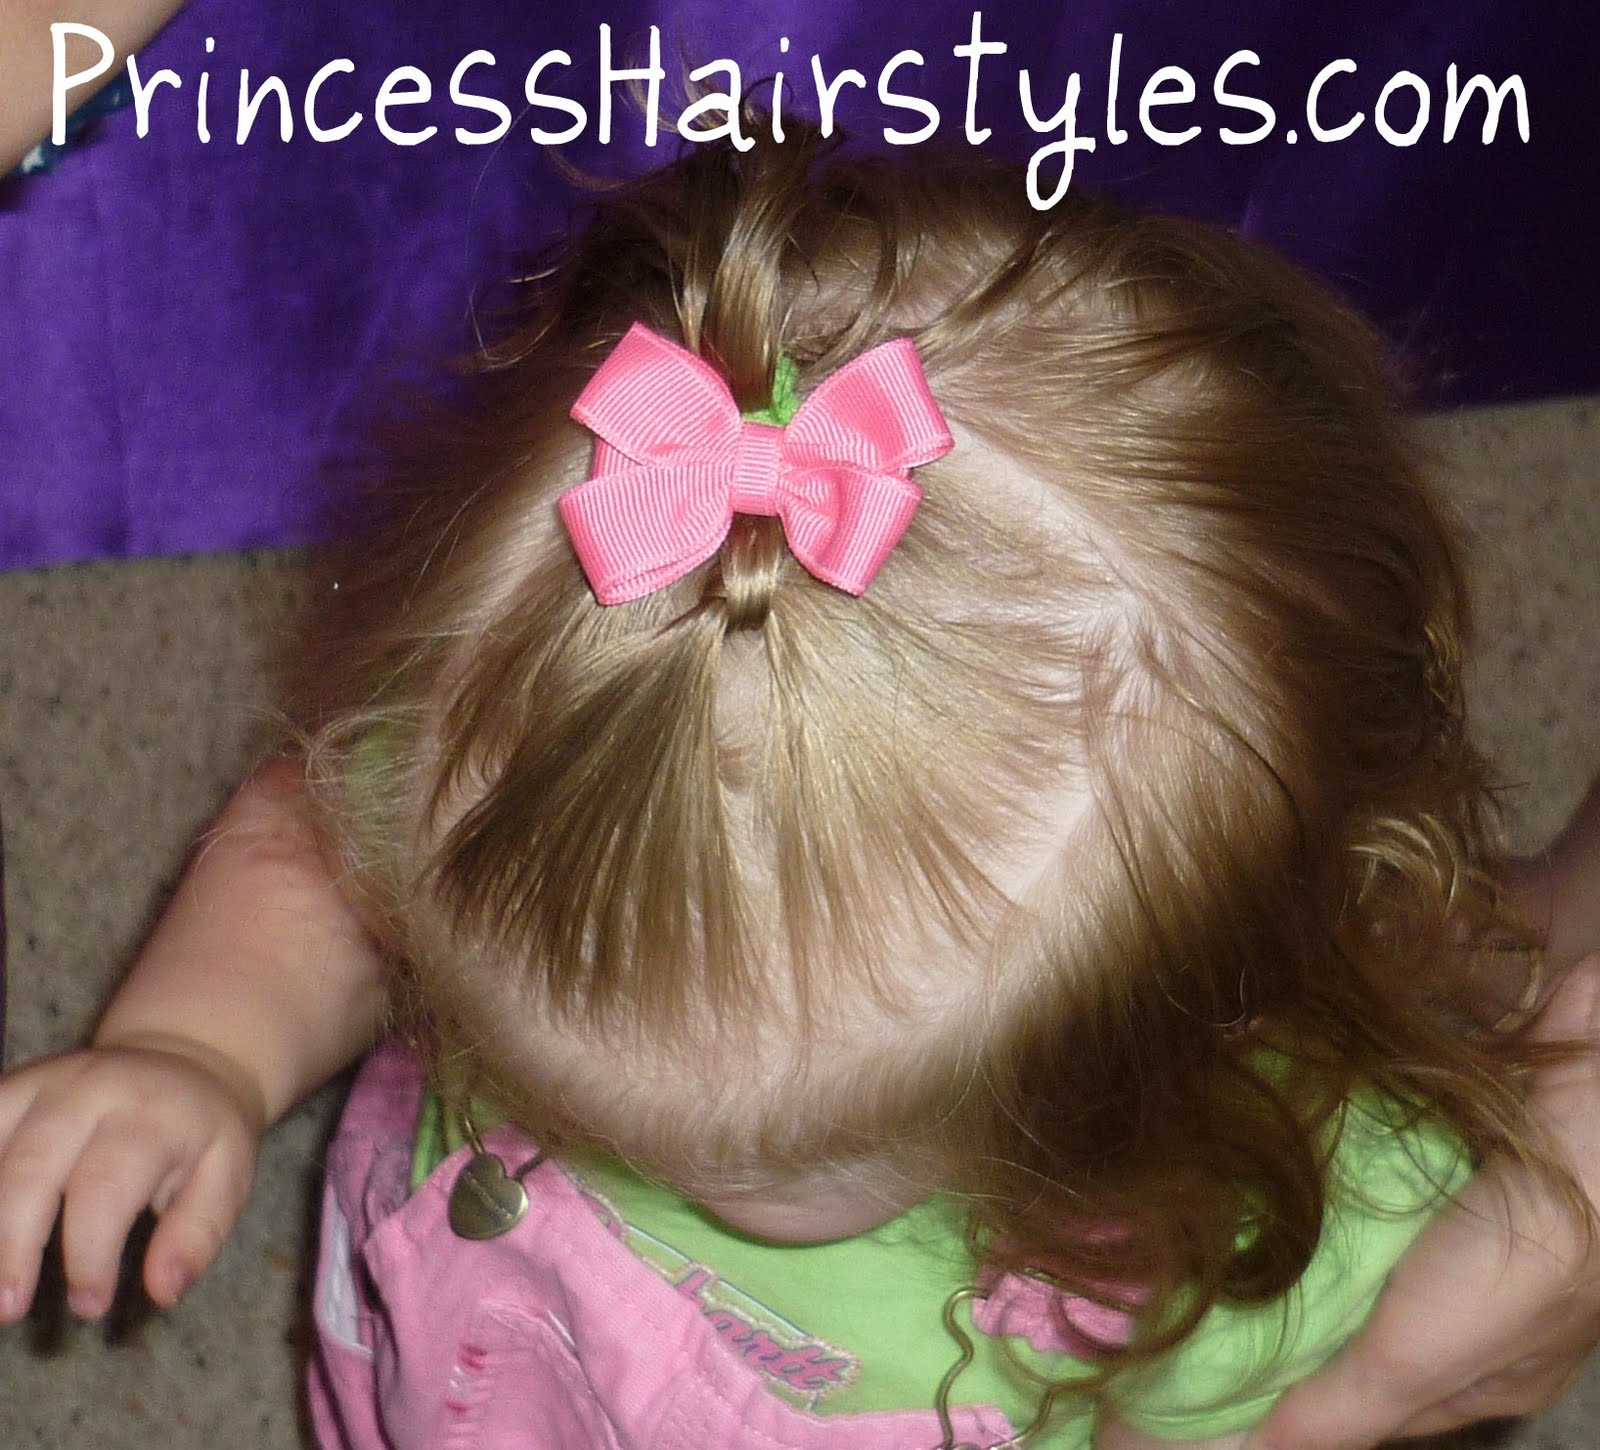 love her natural wavy curls arent they so cute. 1600 x 1450.Hairstyles For Girls Ages 12 13